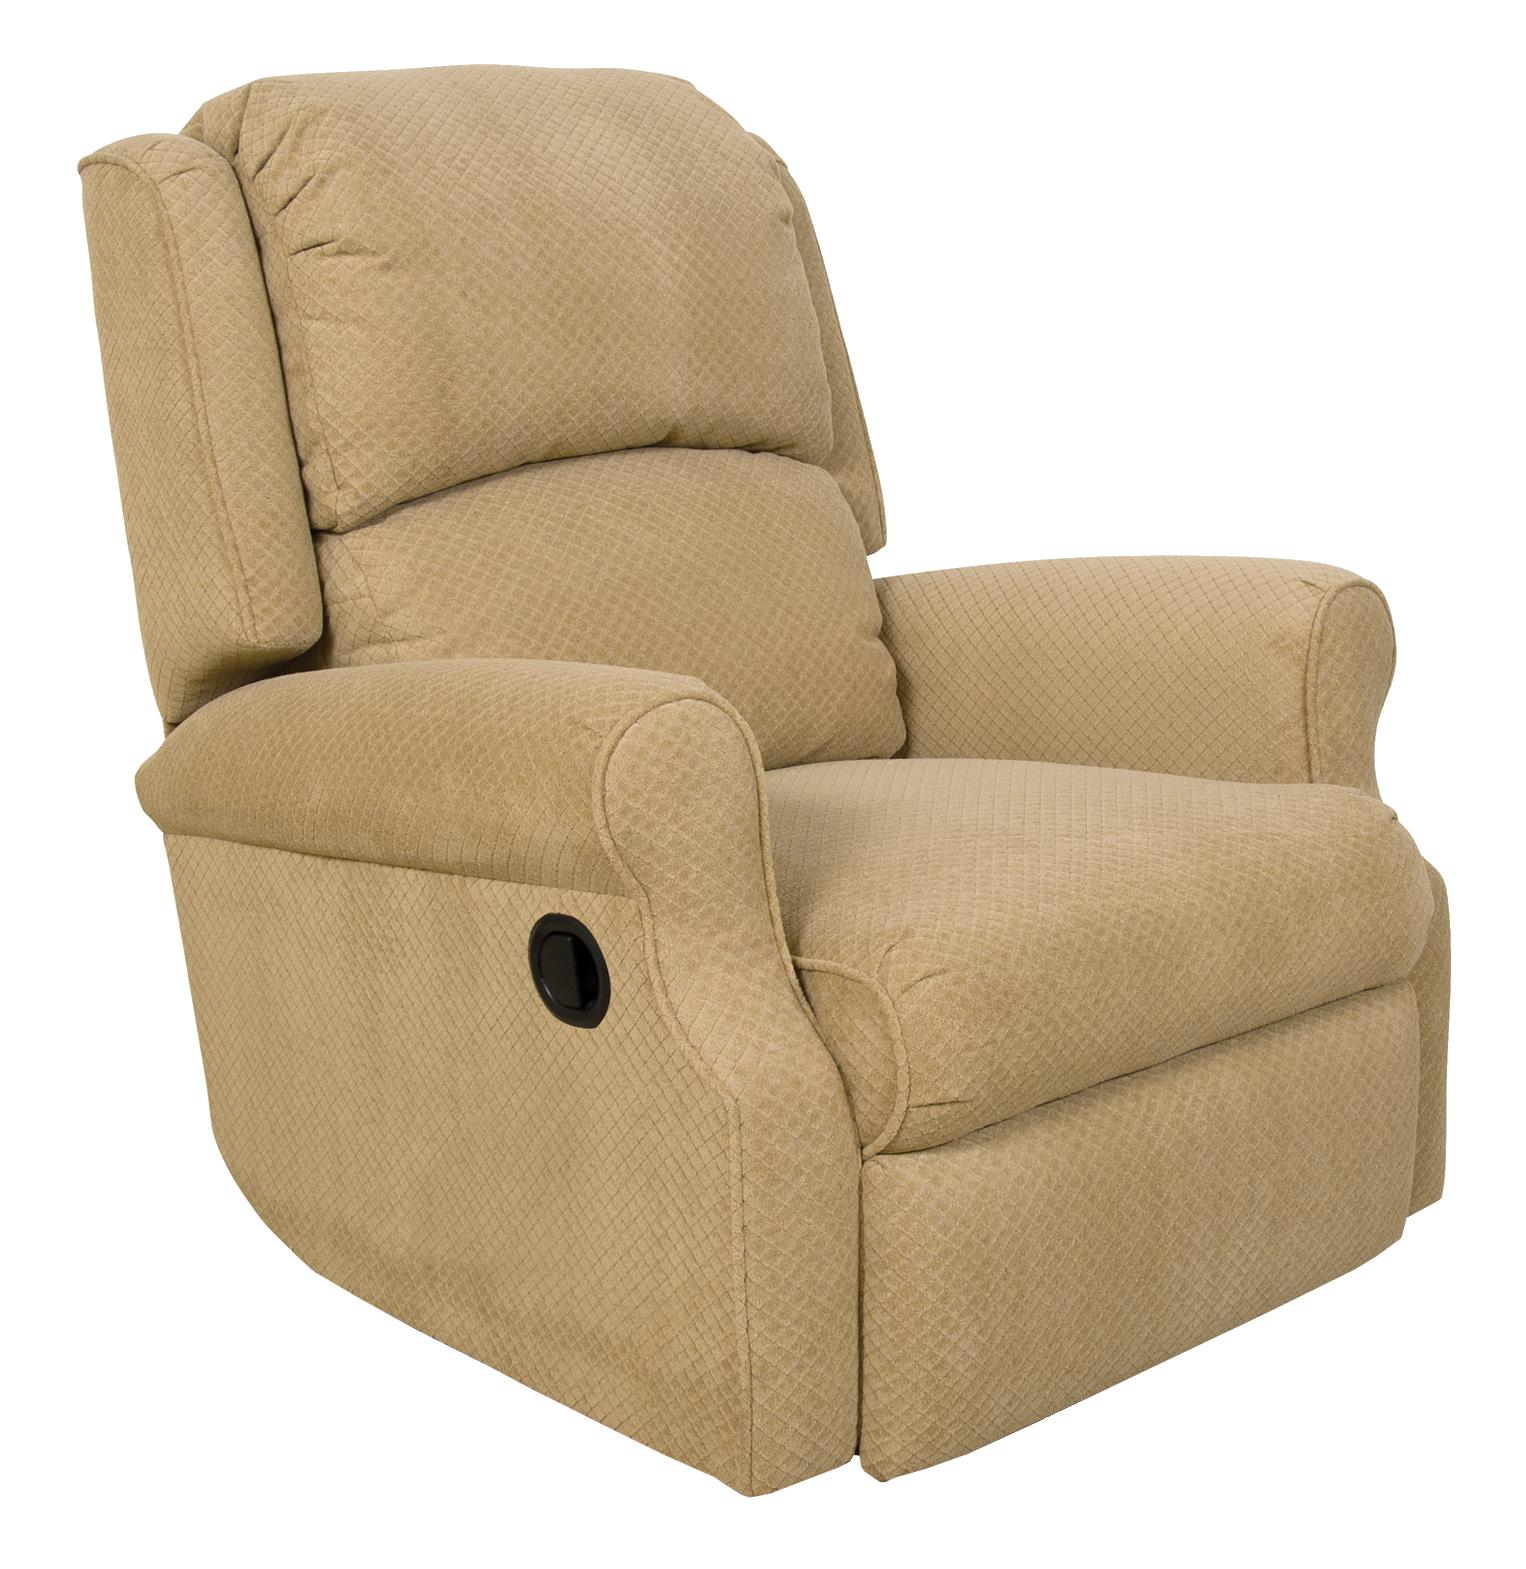 Marybeth Min Prox Recliner with Power by England at Pilgrim Furniture City